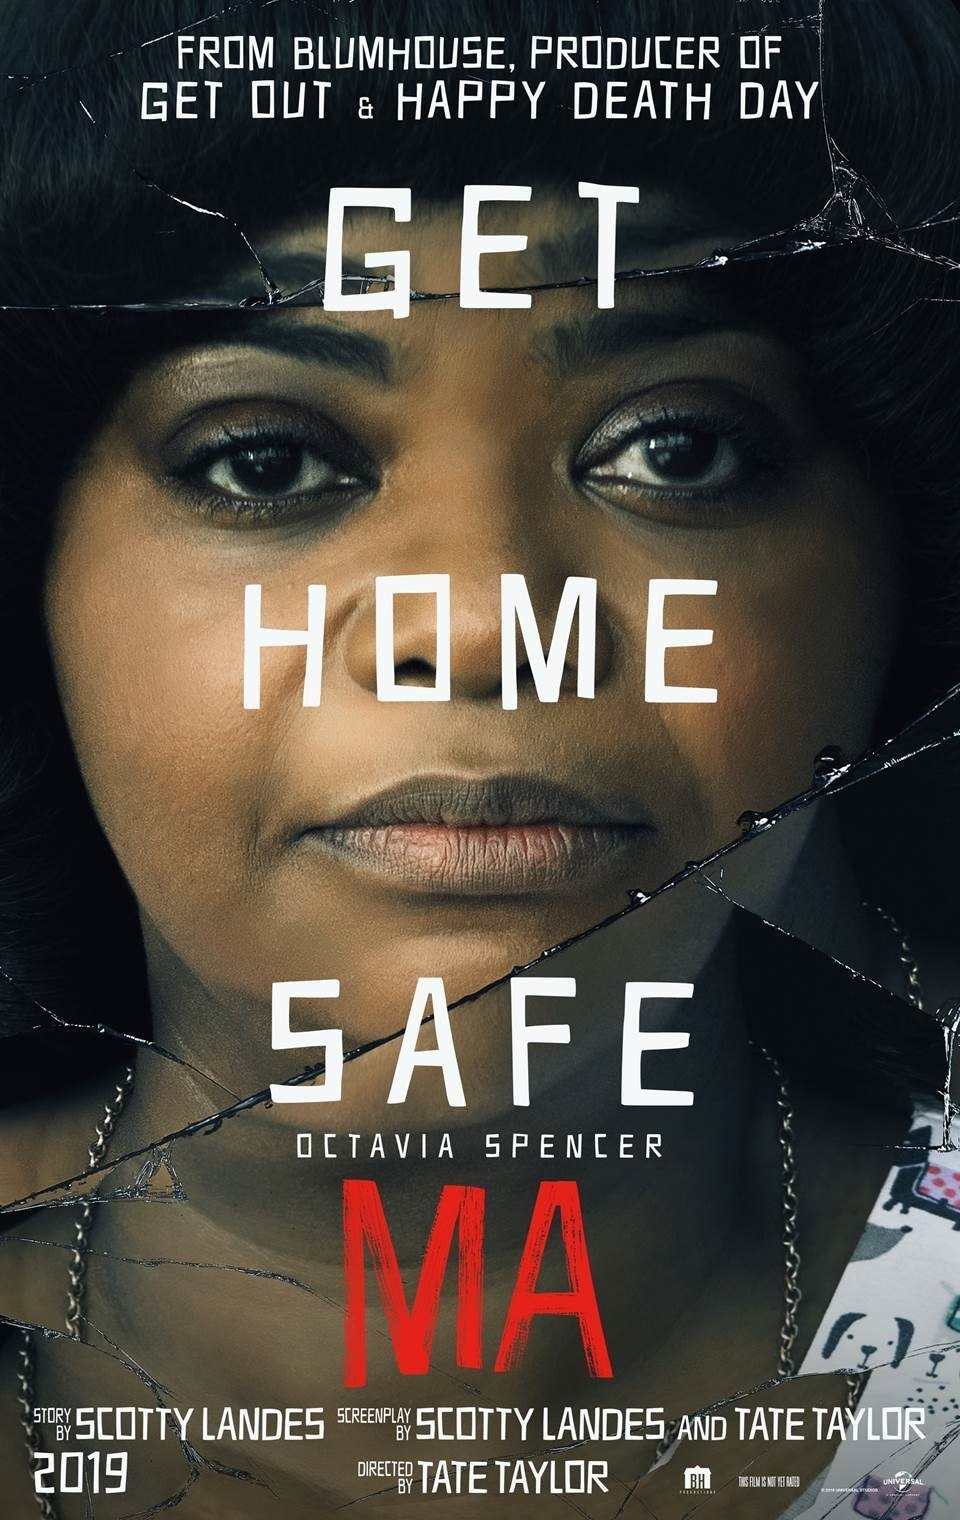 Ma 2019 Poster - New Poster for Blumhouse Horror Movie MA Starring Octavia Spencer